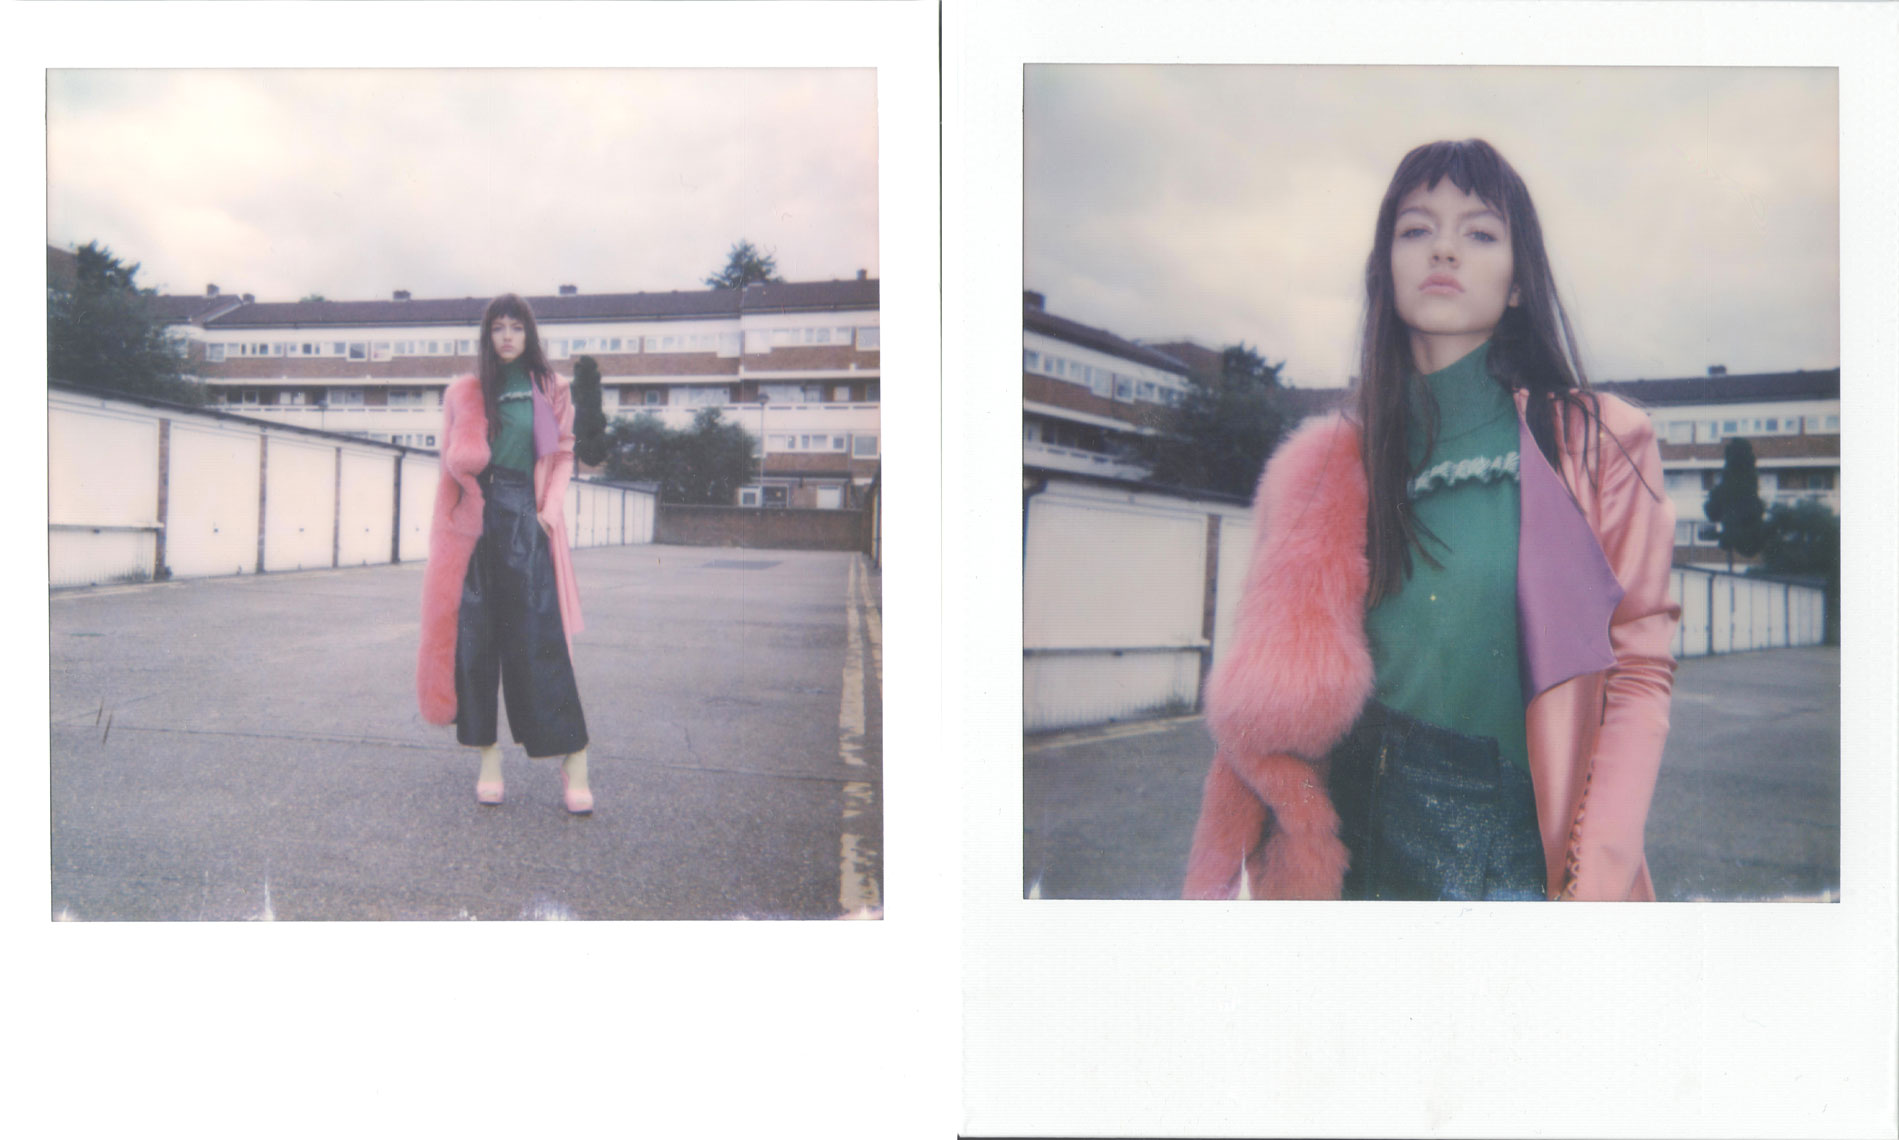 issie-gibbons-fashion-stylist-hunger-fur-pink